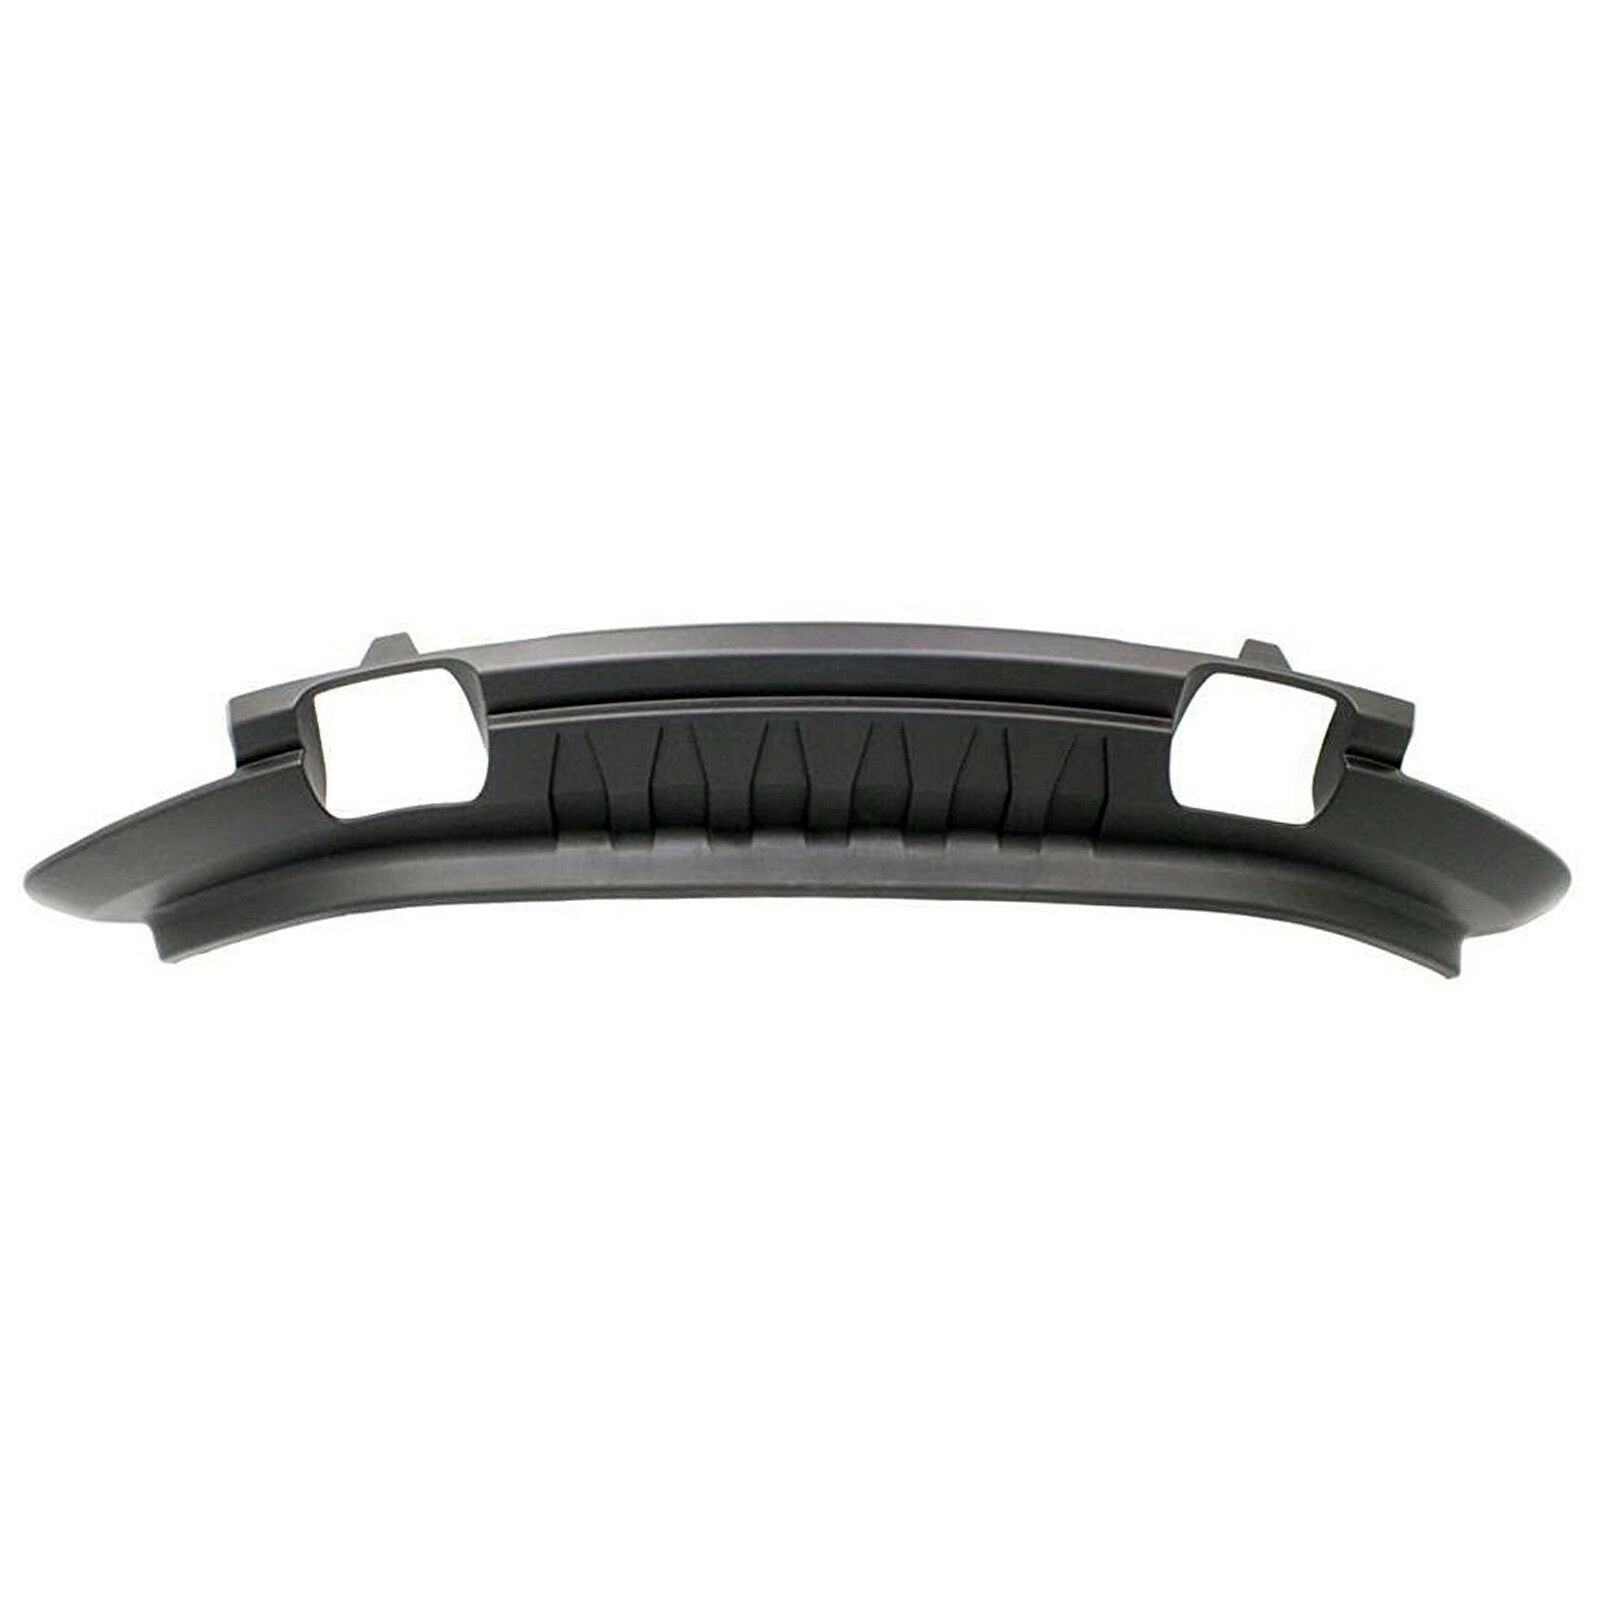 NEW Textured Front Lower Bumper Valance for 2009-2014 Ford F150 W/out Sport Pkg